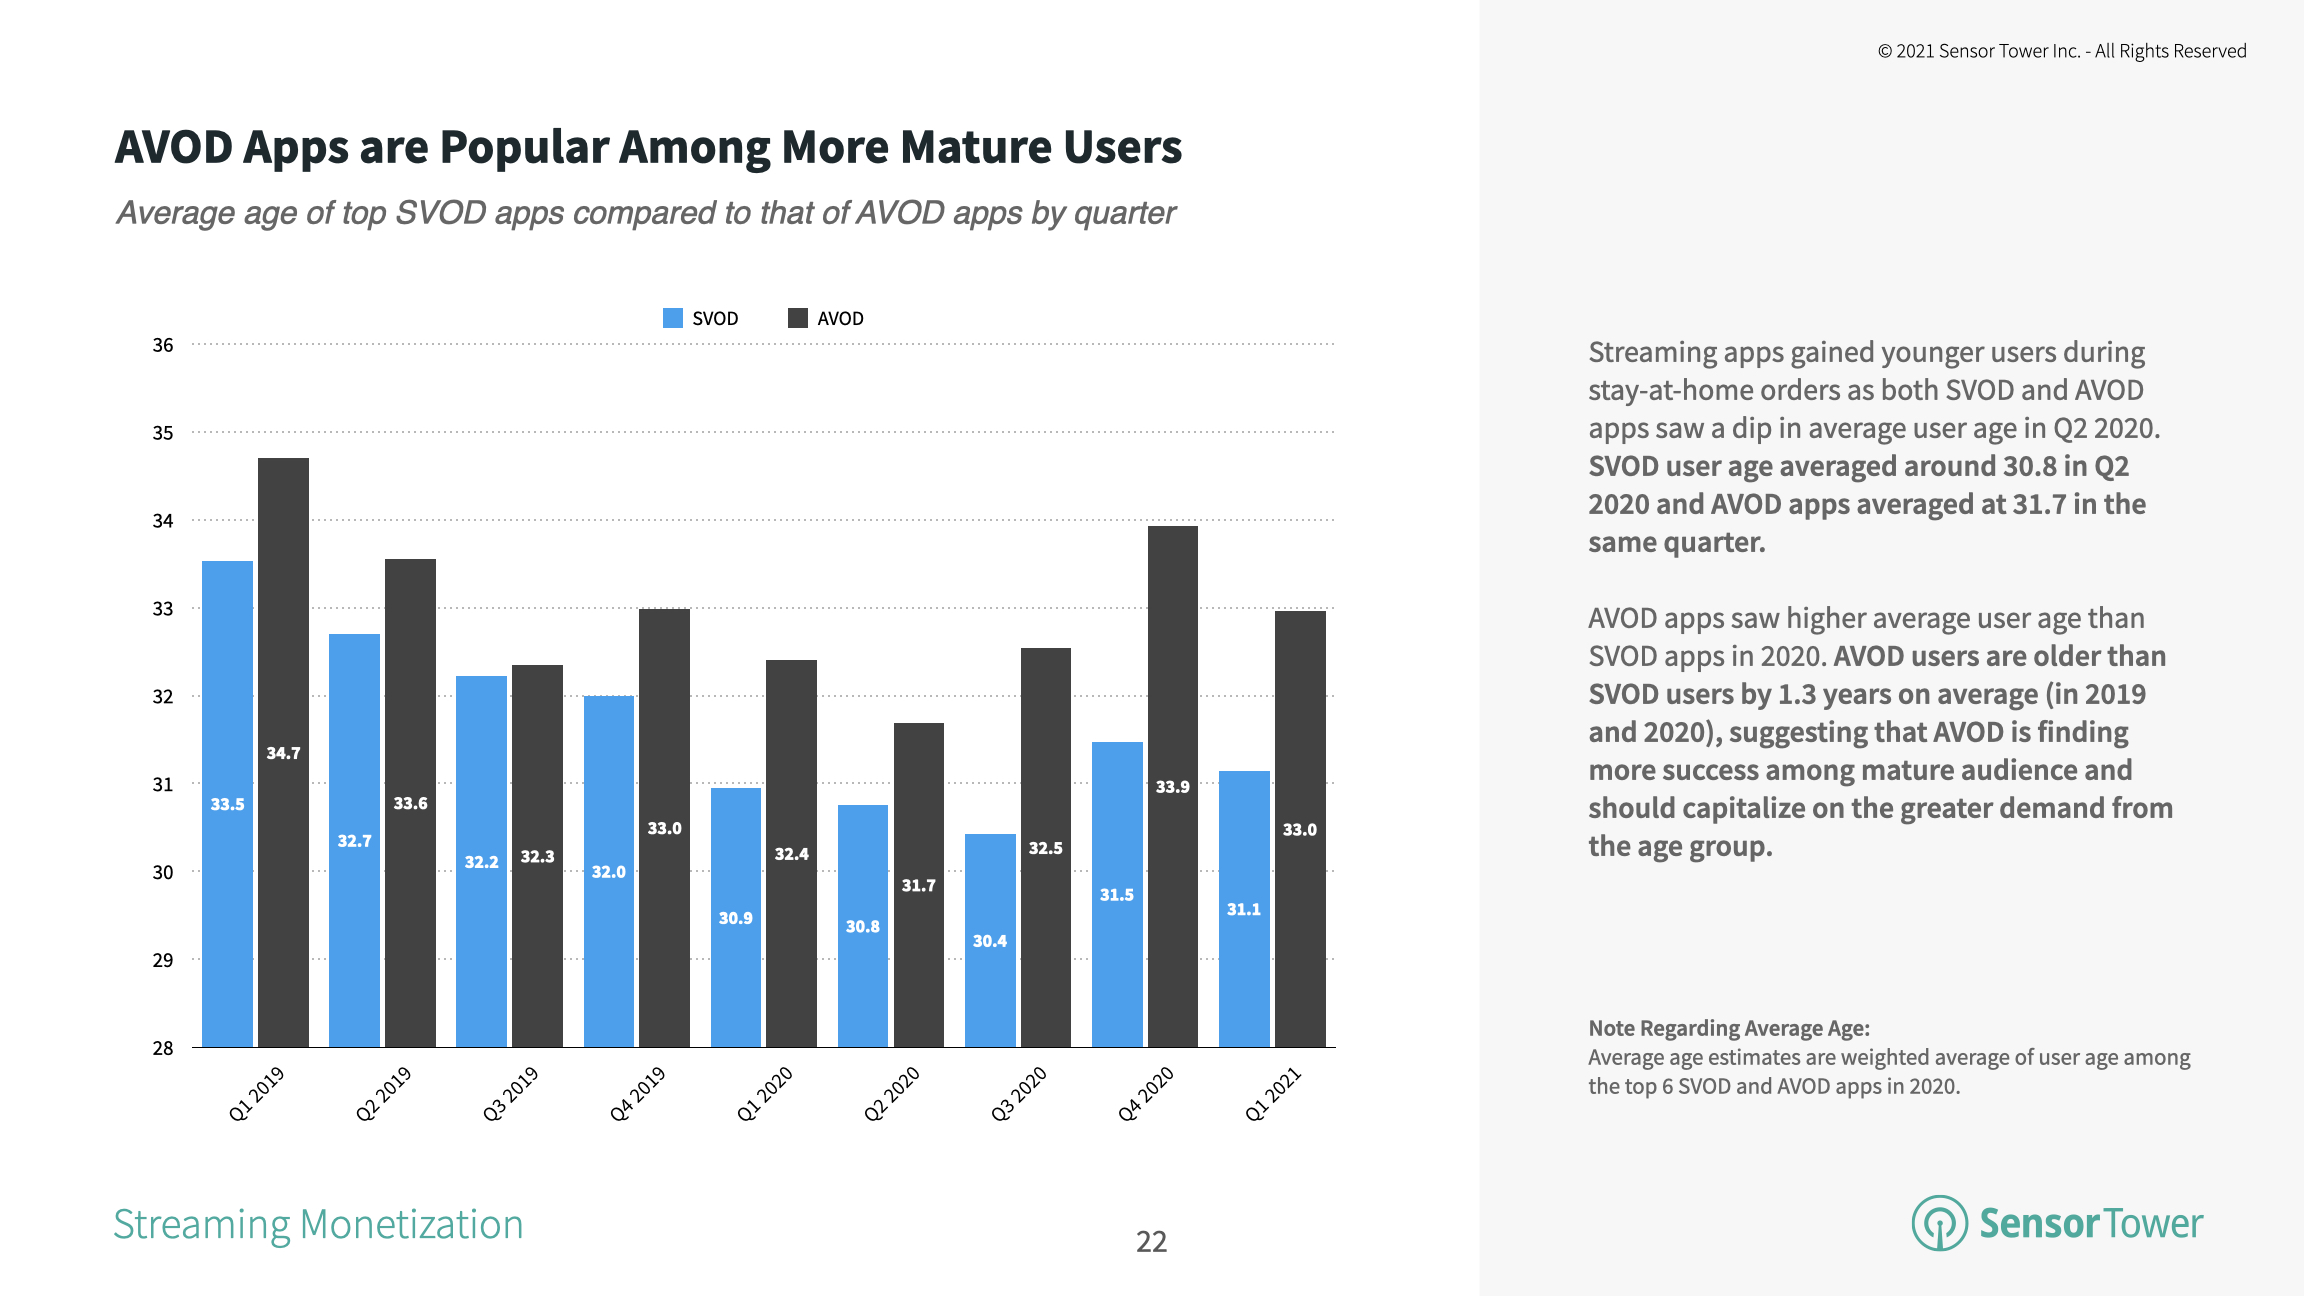 The average age of SVOD app users was about 31.1 years in the 1Q21, nearly 2 years younger than the average AVOD app user.